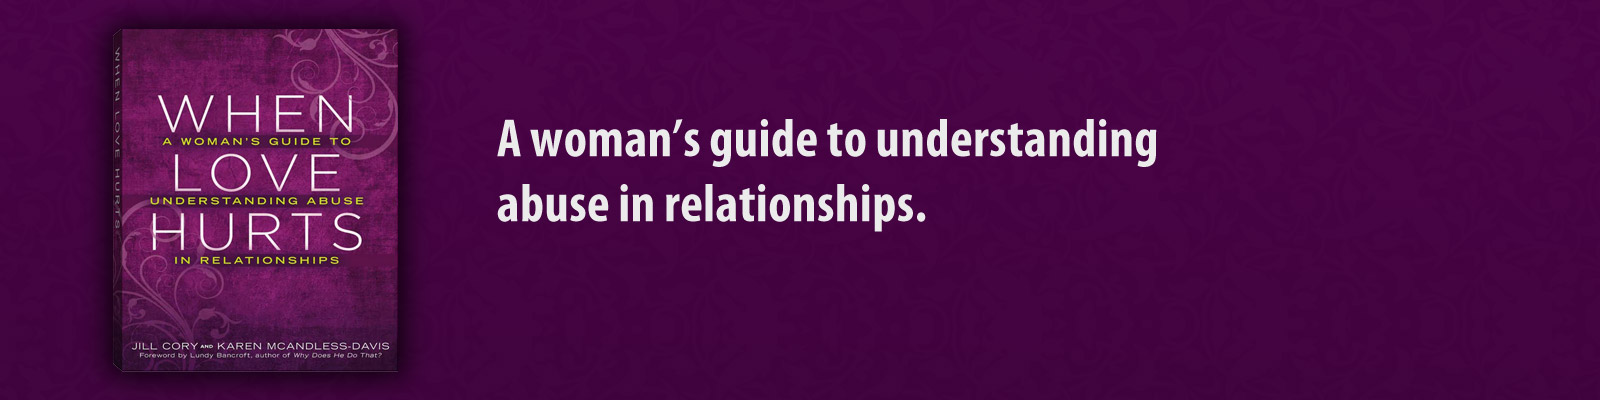 When Love Hurts: A women's guide to understanding abuse in relationships